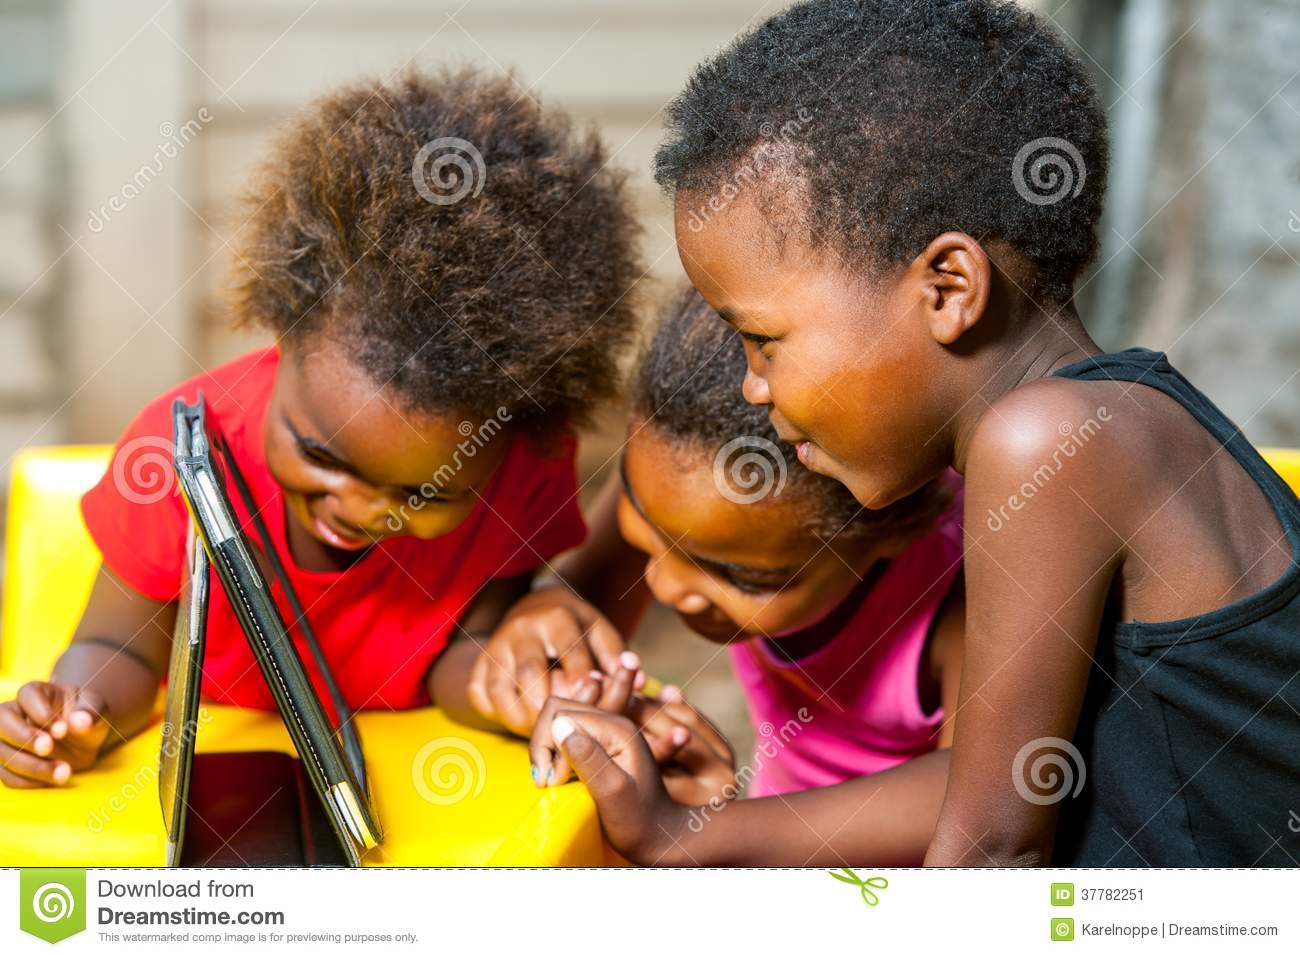 Threesome African Kids Having Fun With Tablet Stock Image - Image 37782251-5955